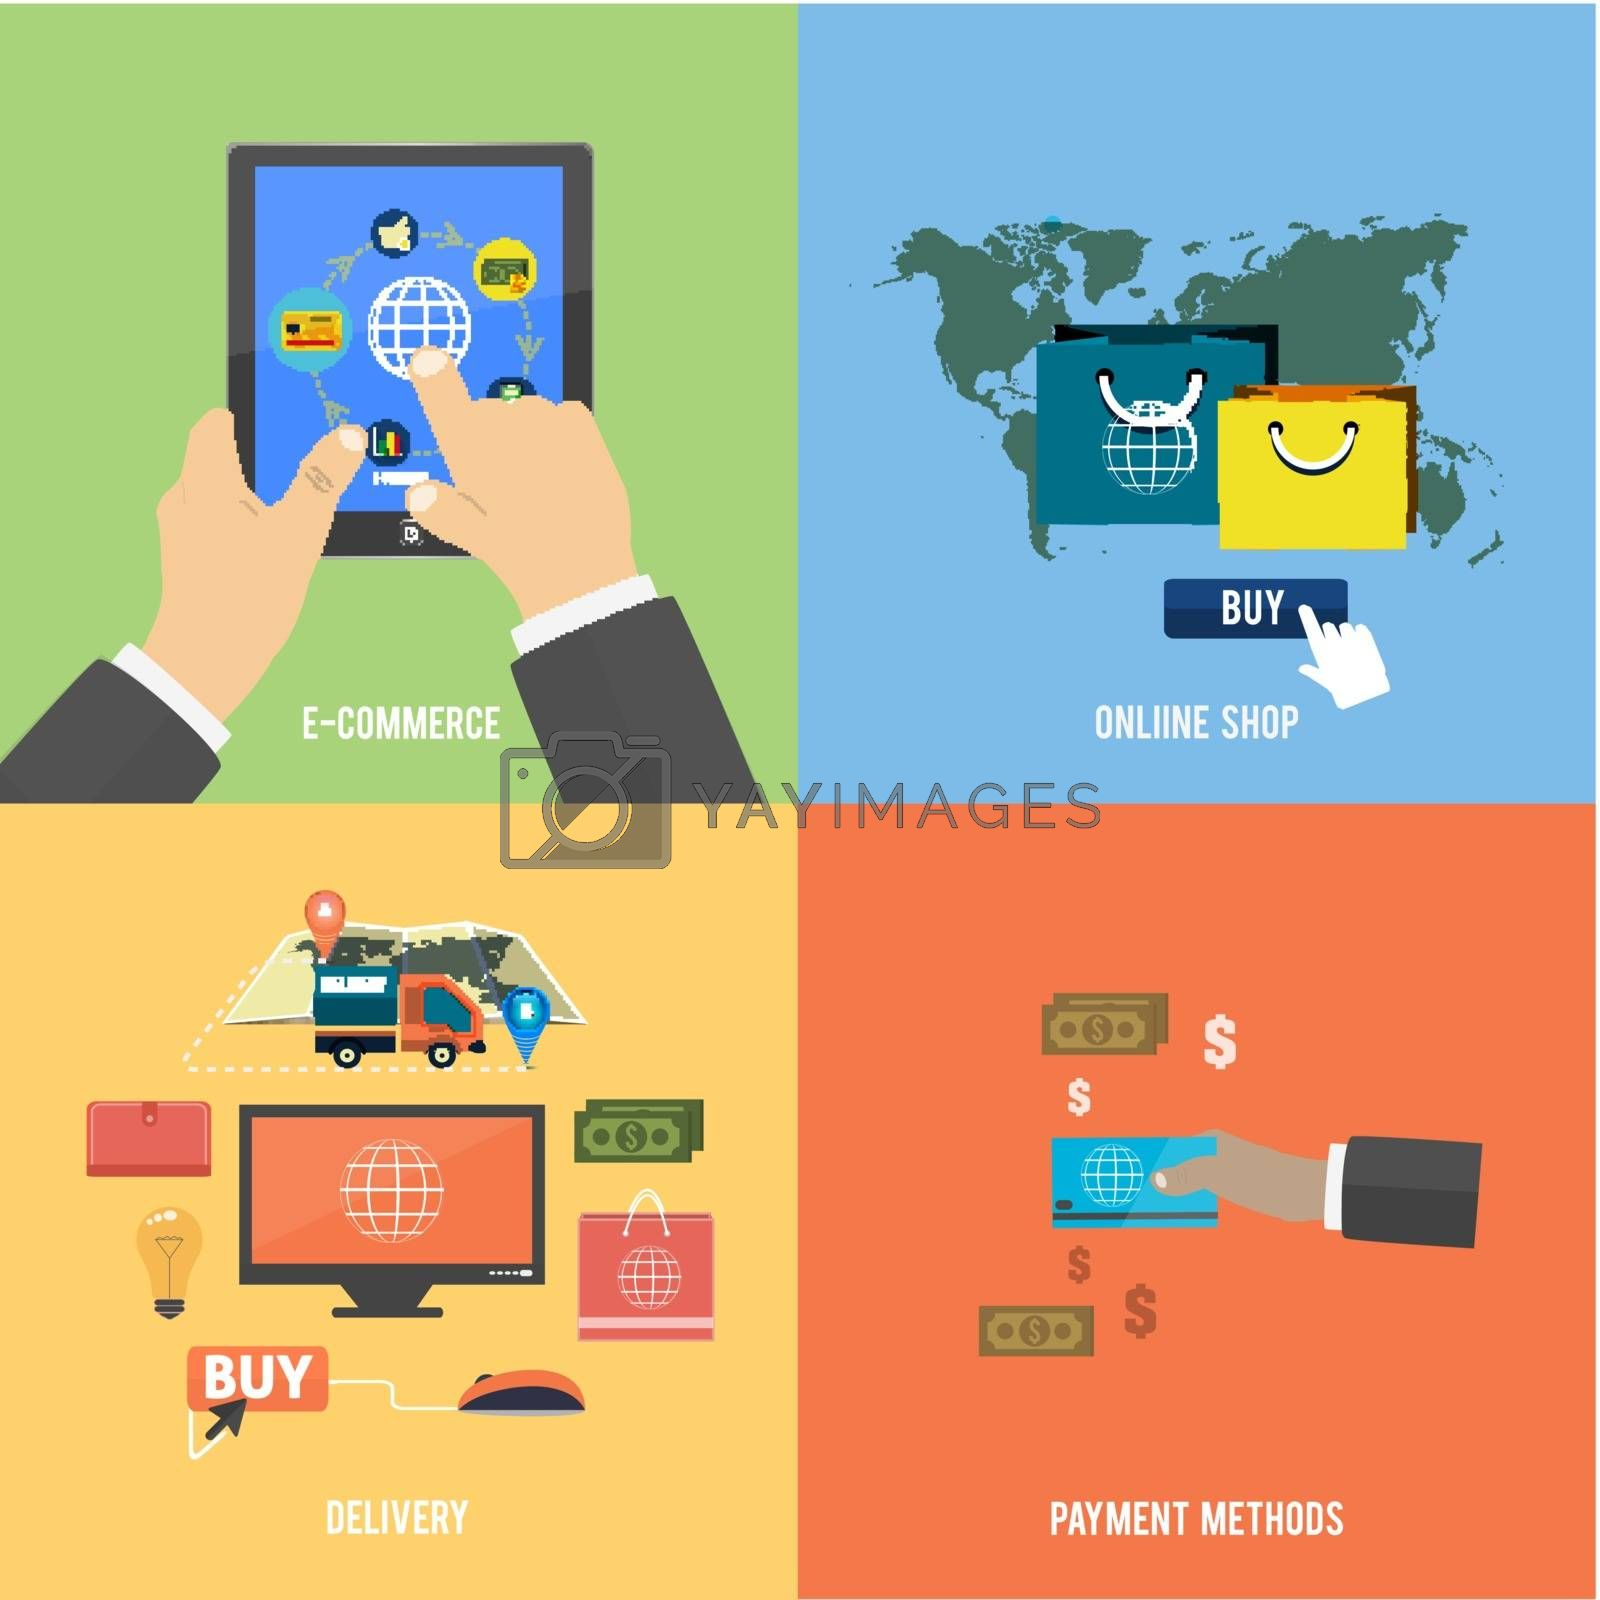 Icons for e-commerce, delivery, online shopping, payment methods, business tools